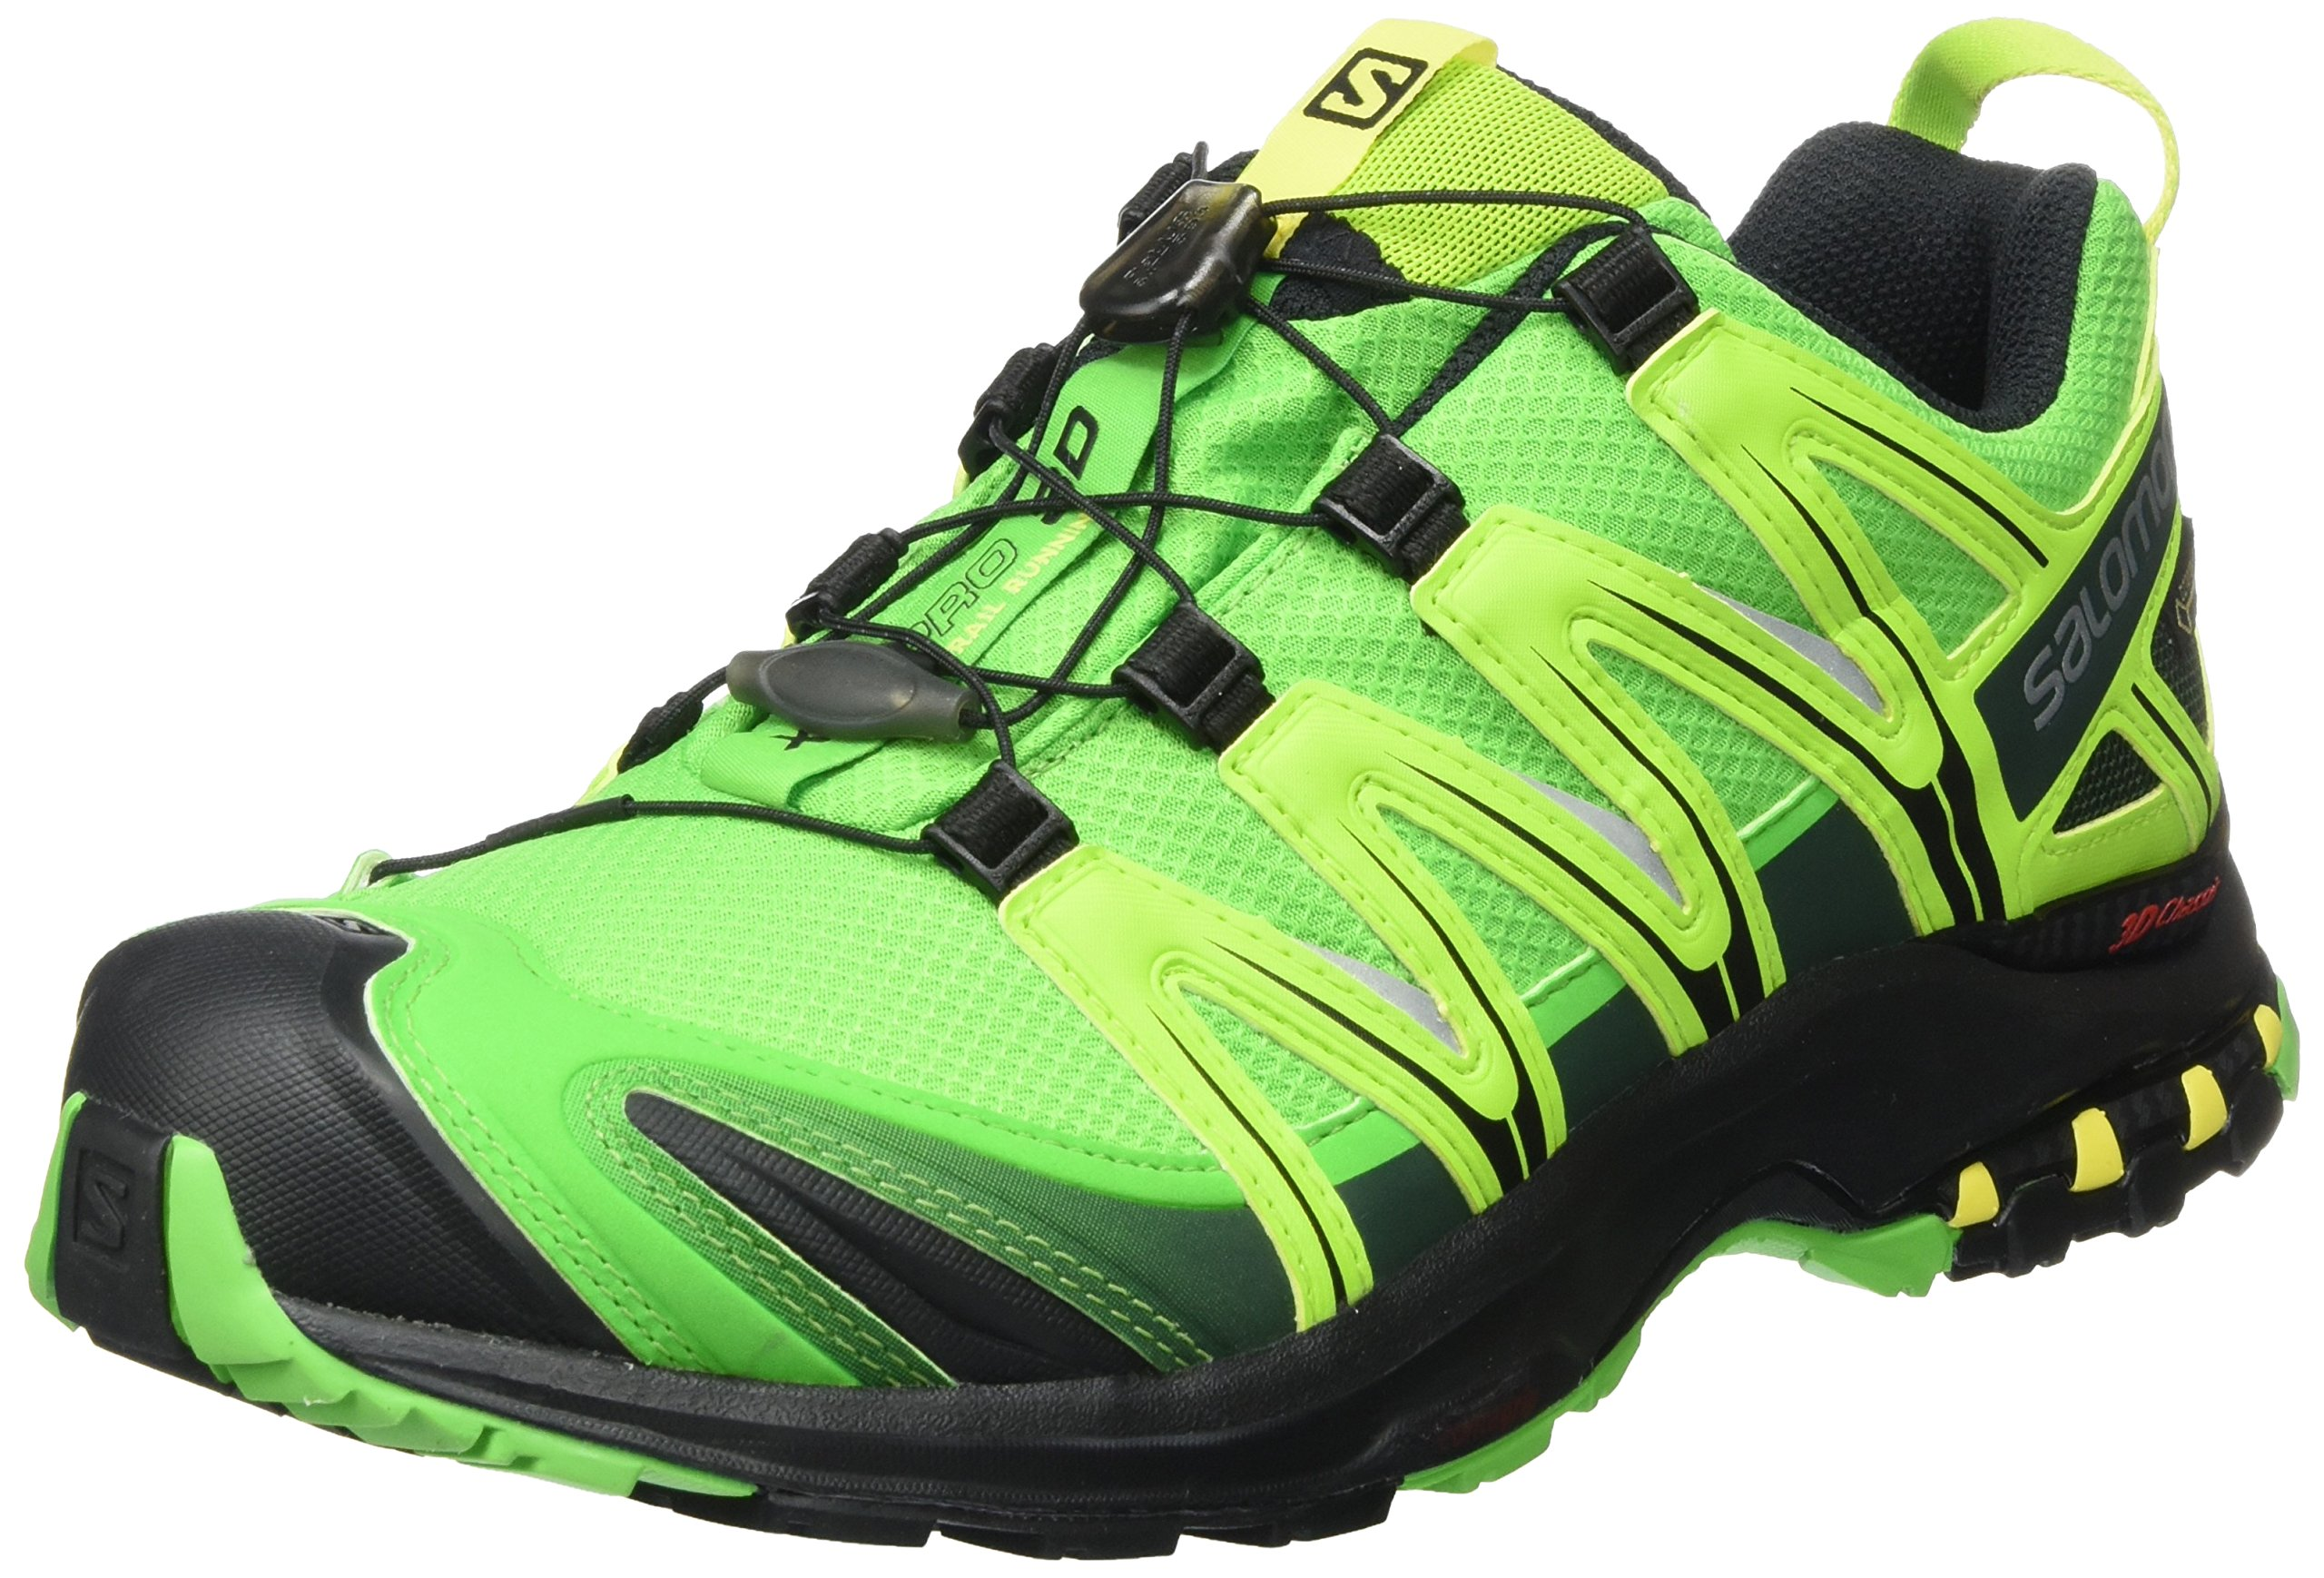 16af81e2fa7c Galleon - Salomon Men s XA PRO 3D GTX Classic Green Black Blazing Yellow  Athletic Shoe